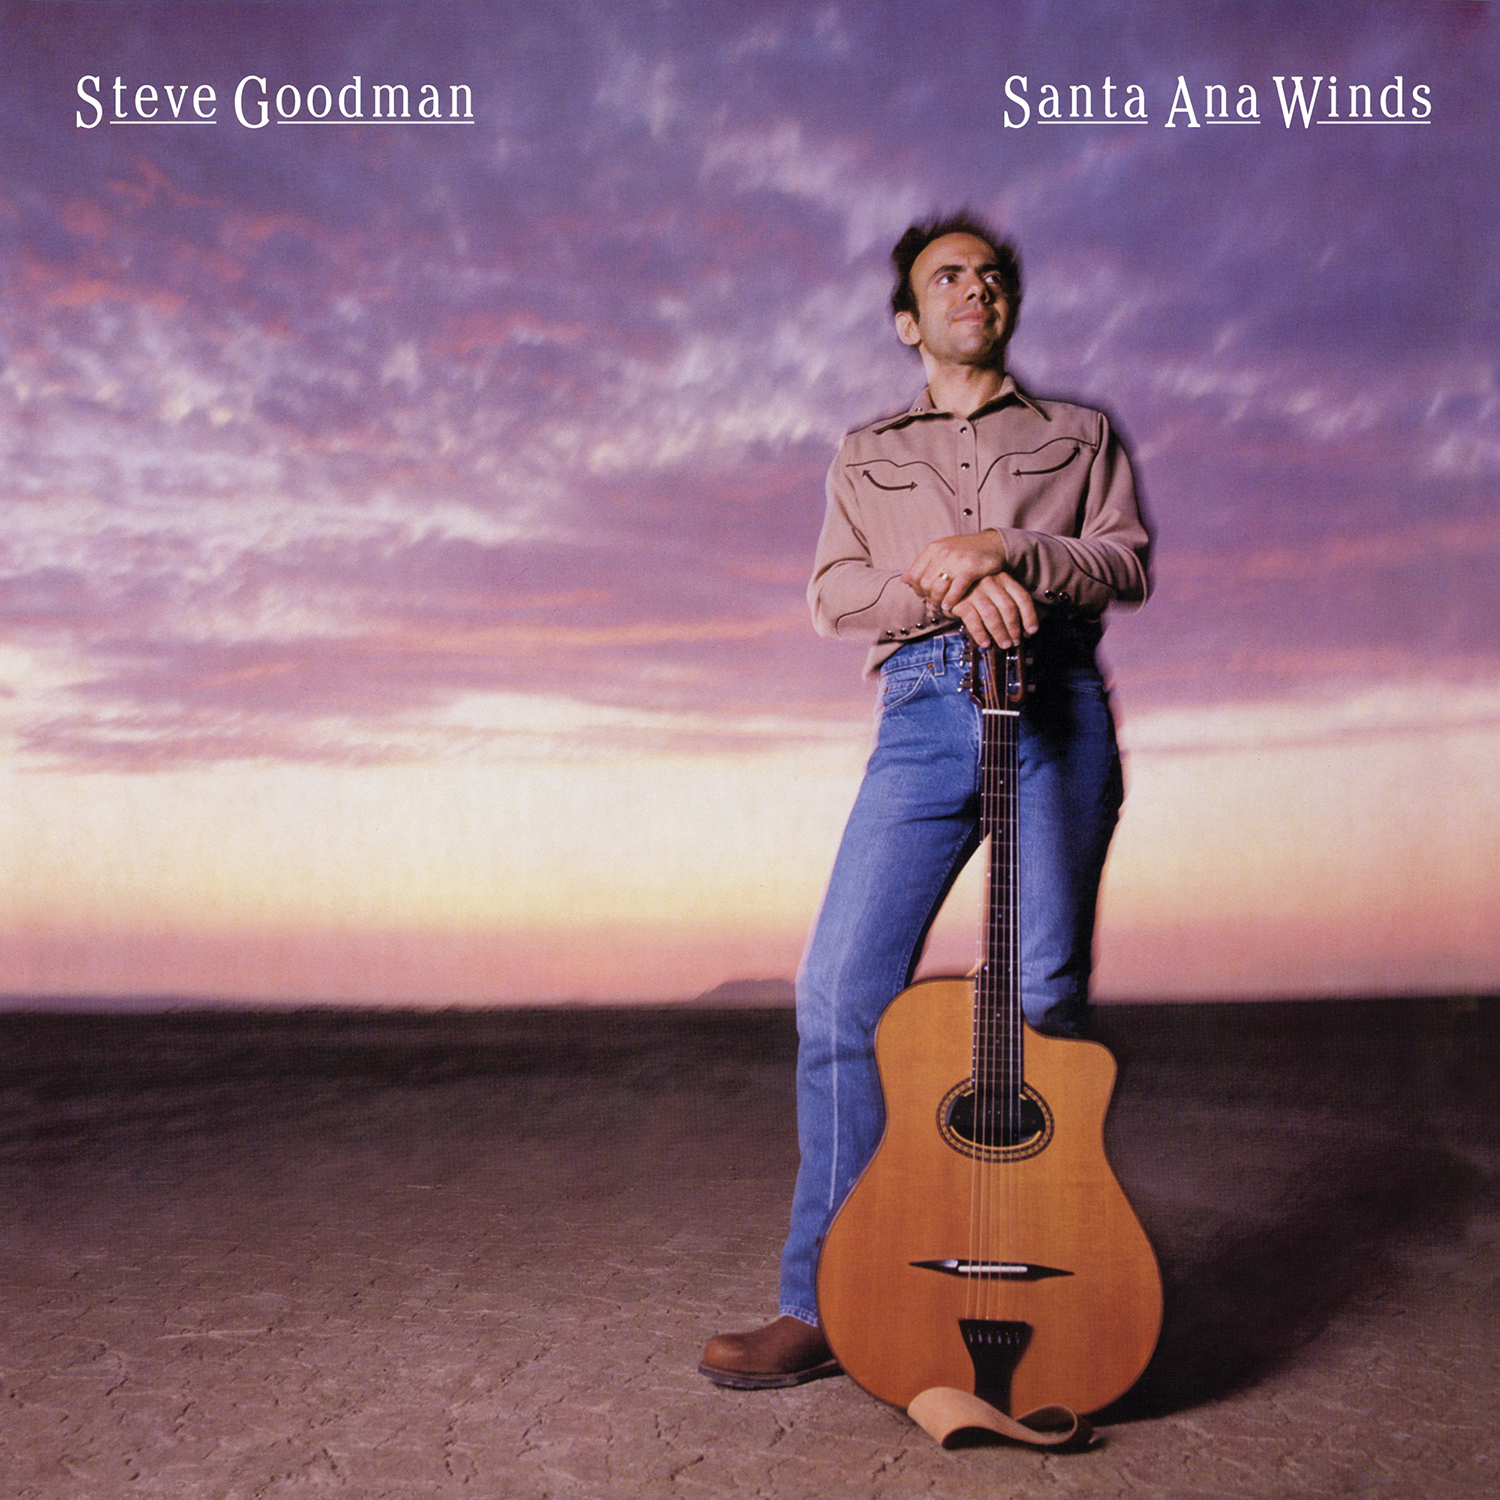 Steve Goodman - Santa Ana Winds  Release Date: August 9, 2019 Label: Omnivore Recordings  SERVICE: Mastering, Restoration NUMBER OF DISCS: 1 GENRE: Country FORMAT: CD